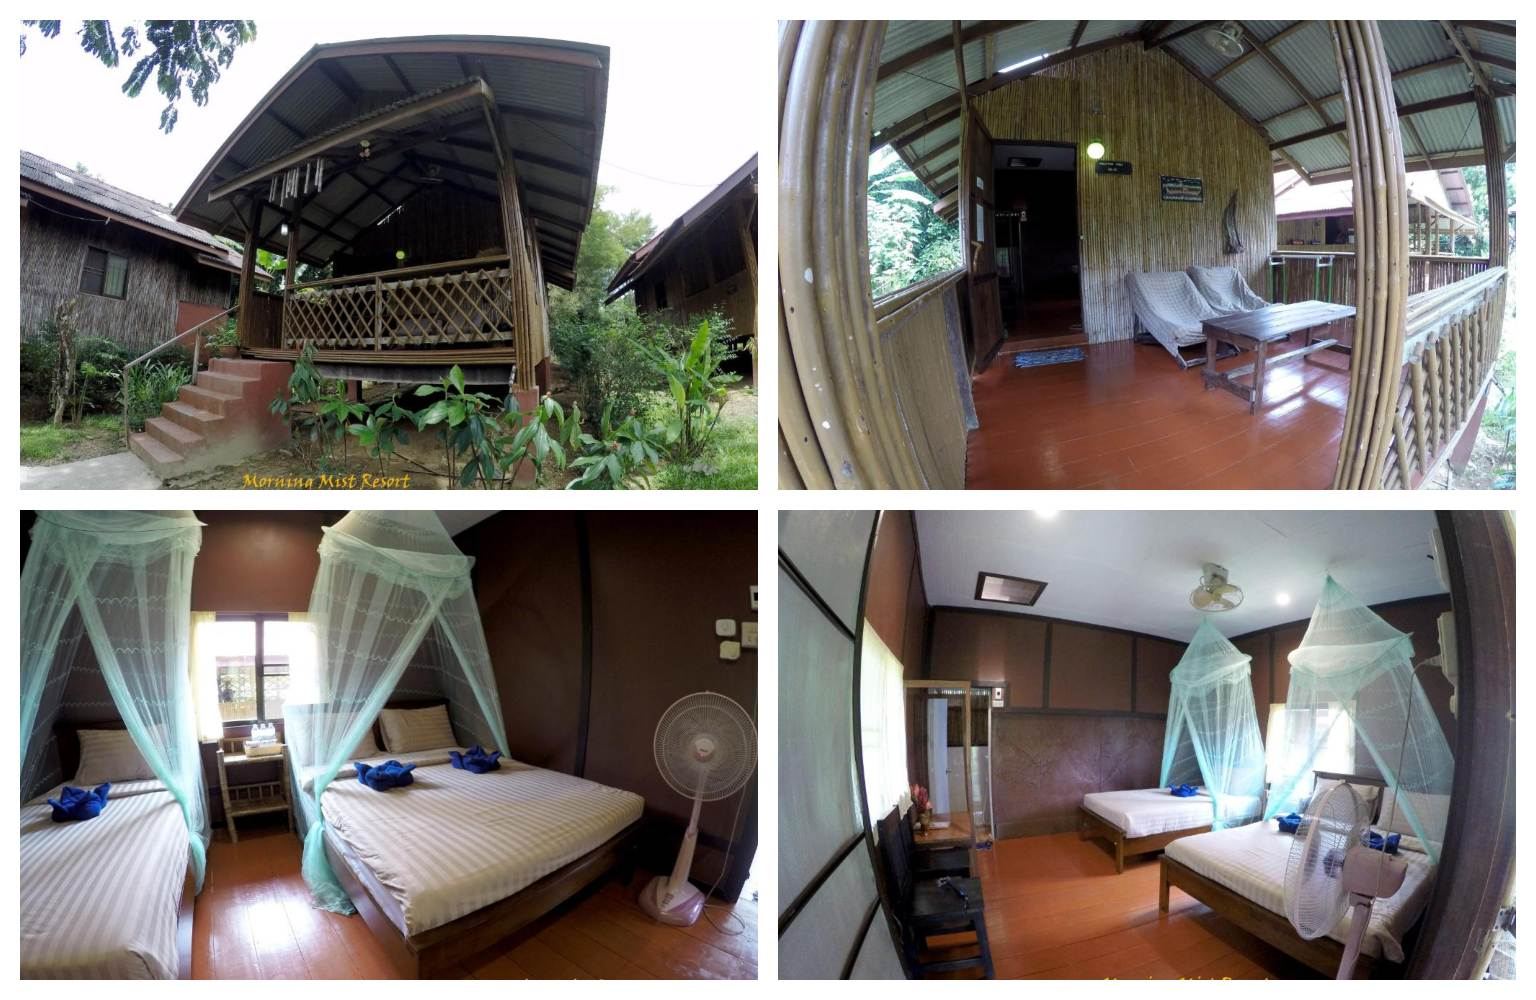 Collage van de slaapkamer in het Morning Mist Resort in Khao Sok, Thailand